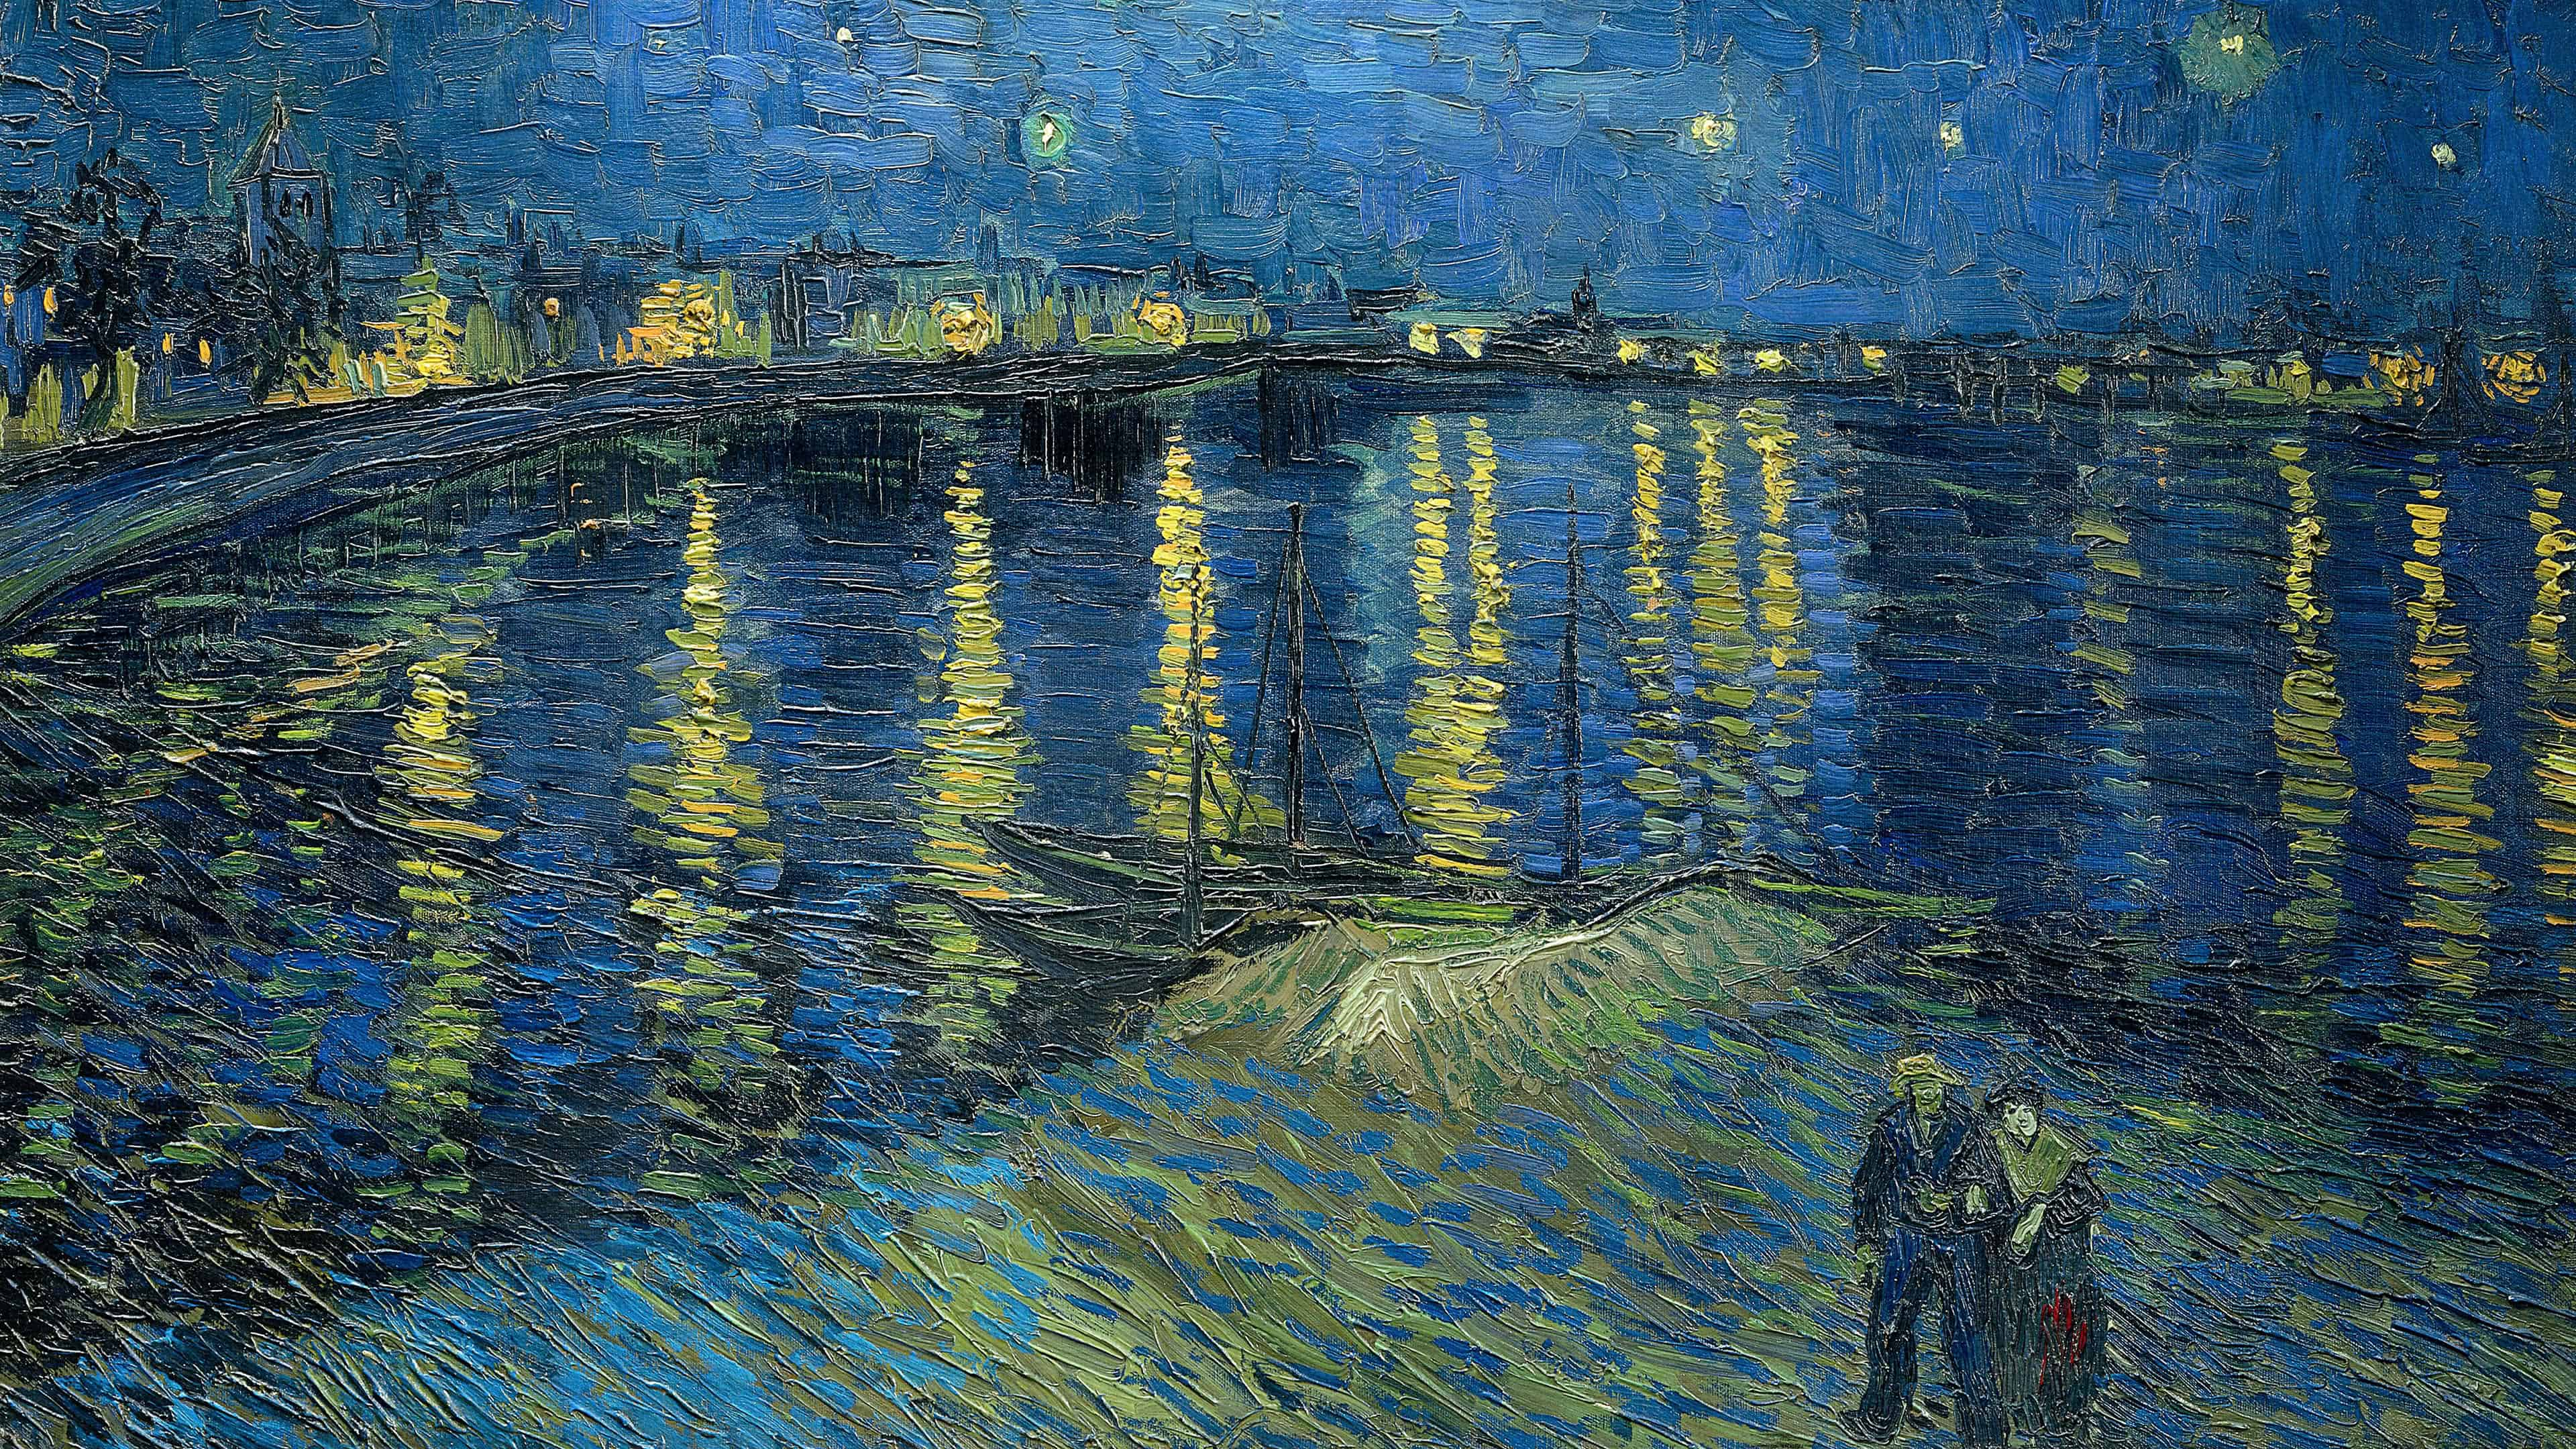 The Starry Night Painting By Vincent Van Gogh UHD 4K Wallpaper 3840x2160